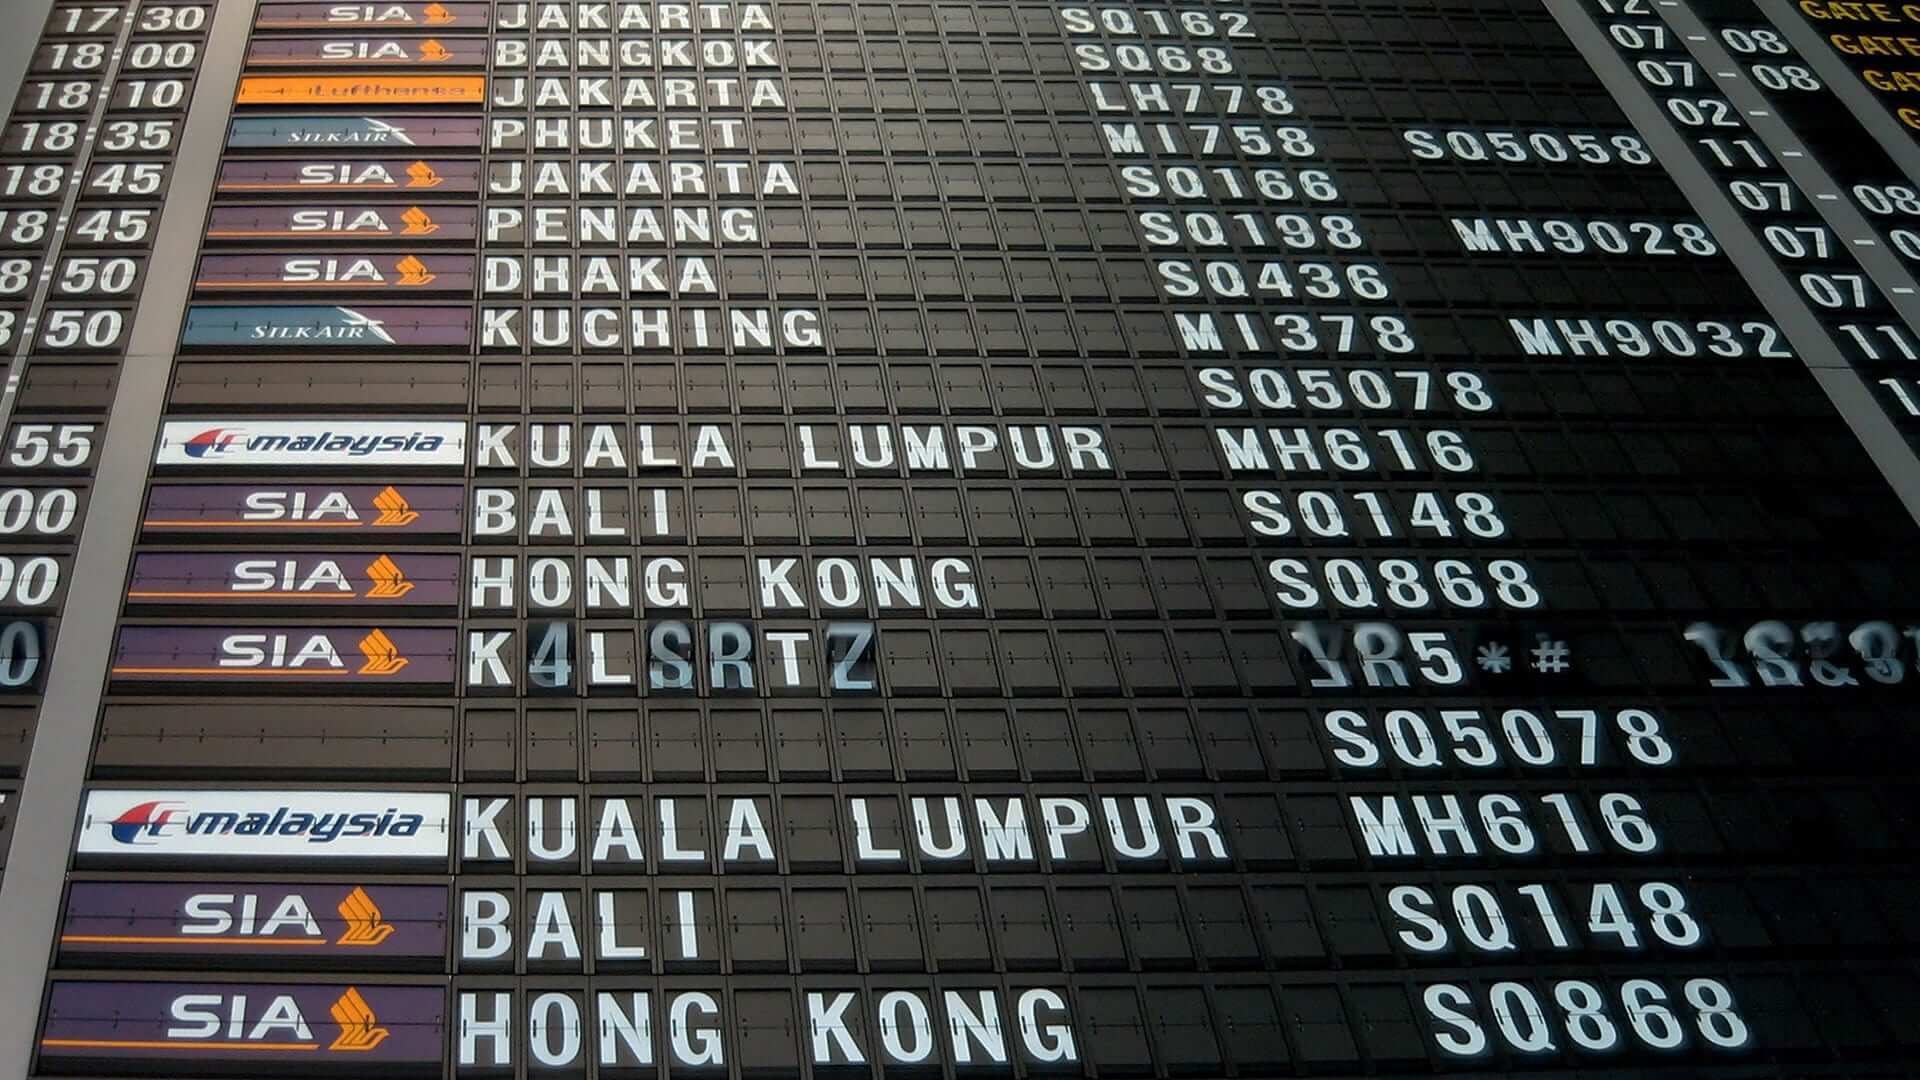 List of flights on a display board at an airport